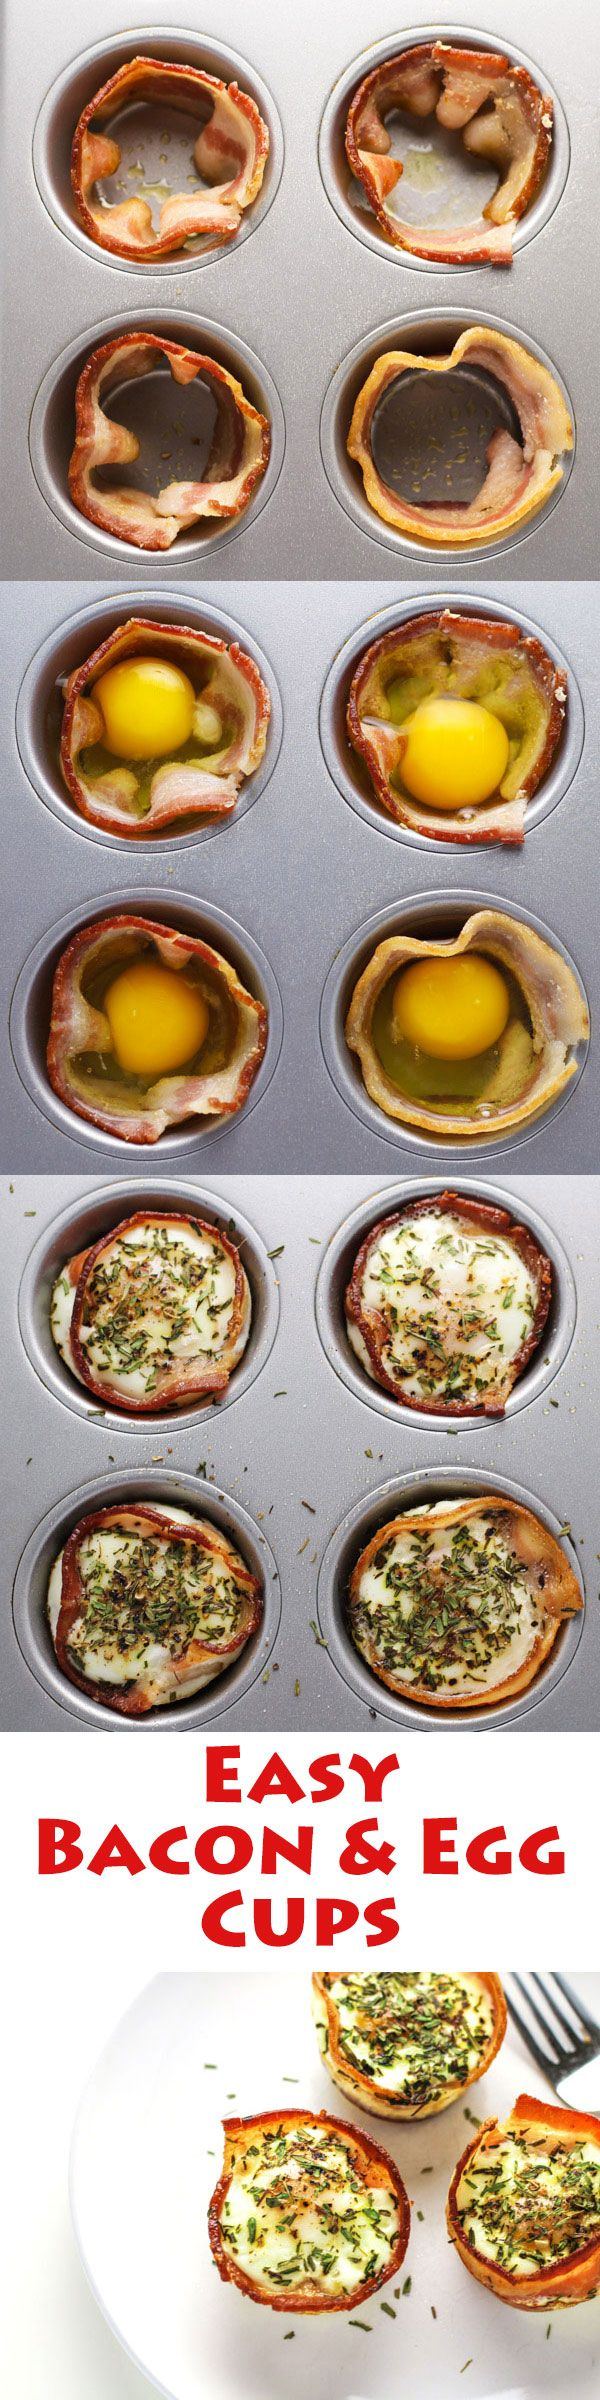 These Bacon and Egg Cups are made in a muffin tin and so easy to make! | http://Tastefulventure.com                                                                                                                                                                                 More